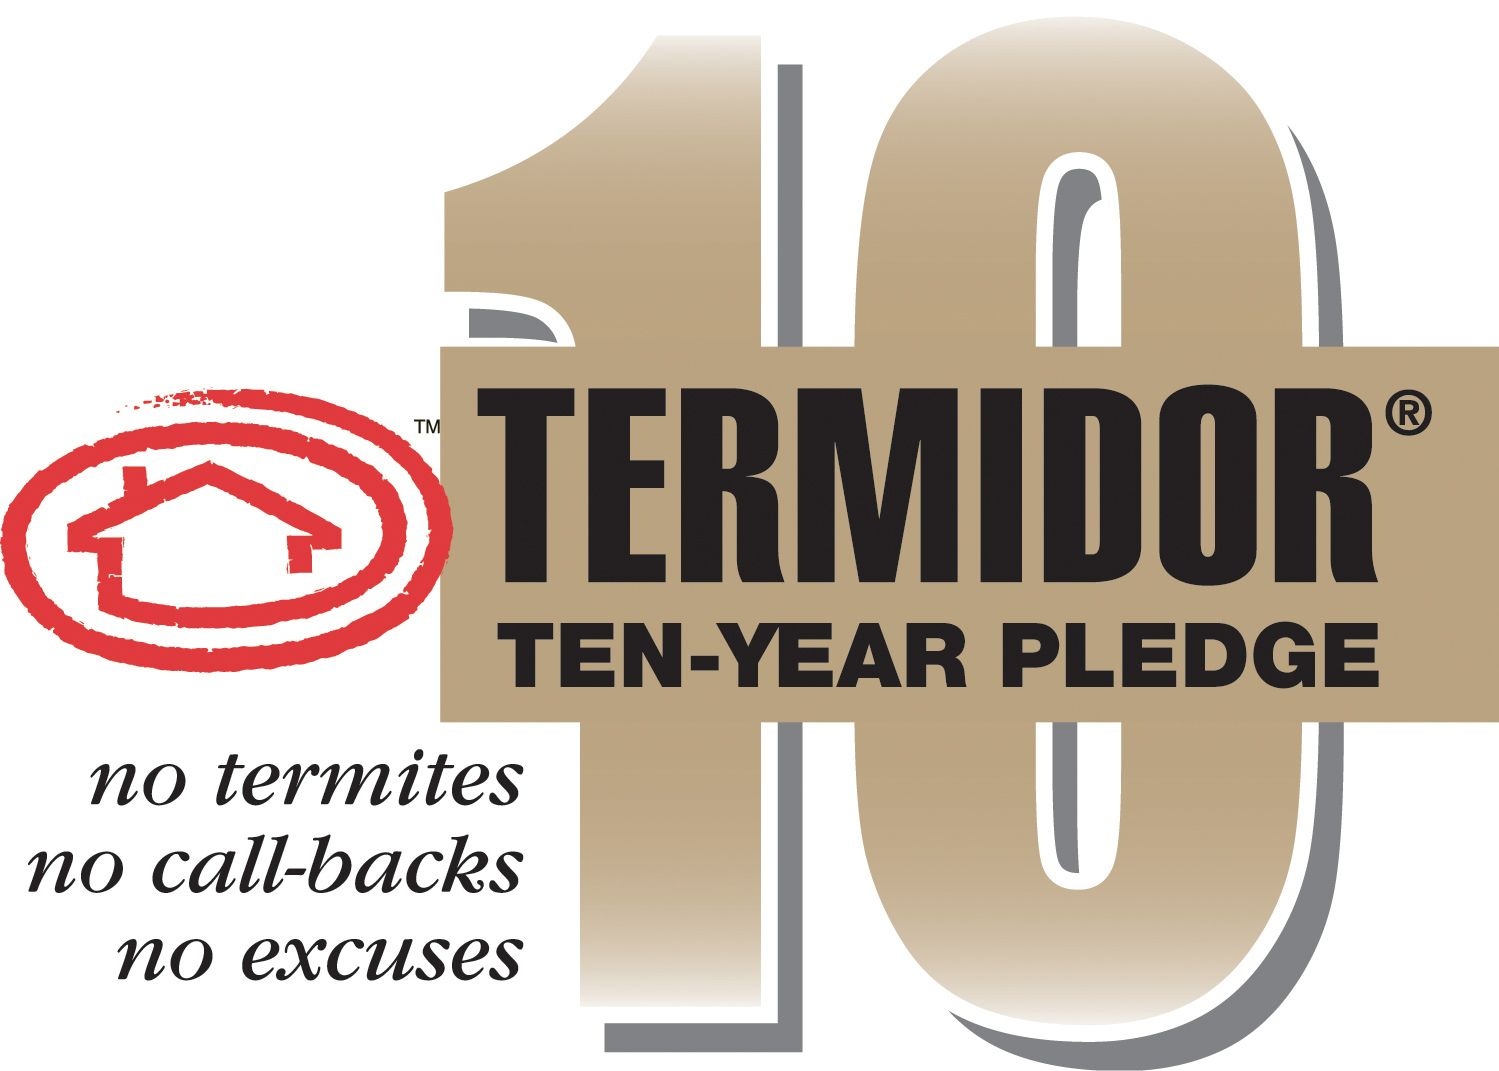 Traditional Termite Treatments Fumigations And Termidor Termite Treatments Prime Termite Los Angeles Ca Termite Treatment Termites Call Backs